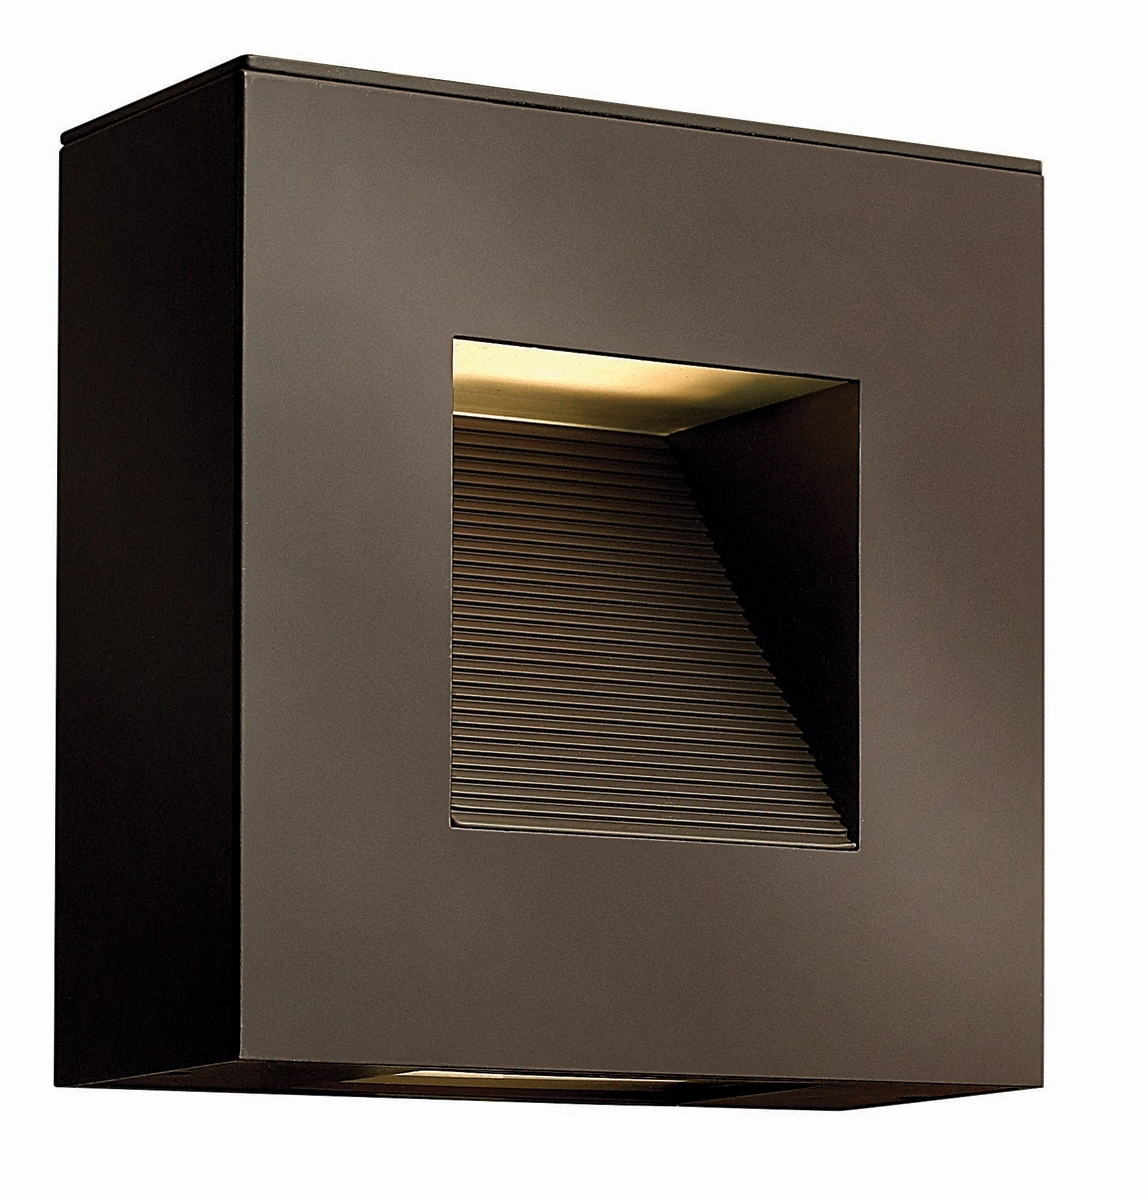 Trendy Light : Formidable Black Wall Mounted Exterior Lights White Simple With Outdoor Wall Post Lights (View 15 of 20)